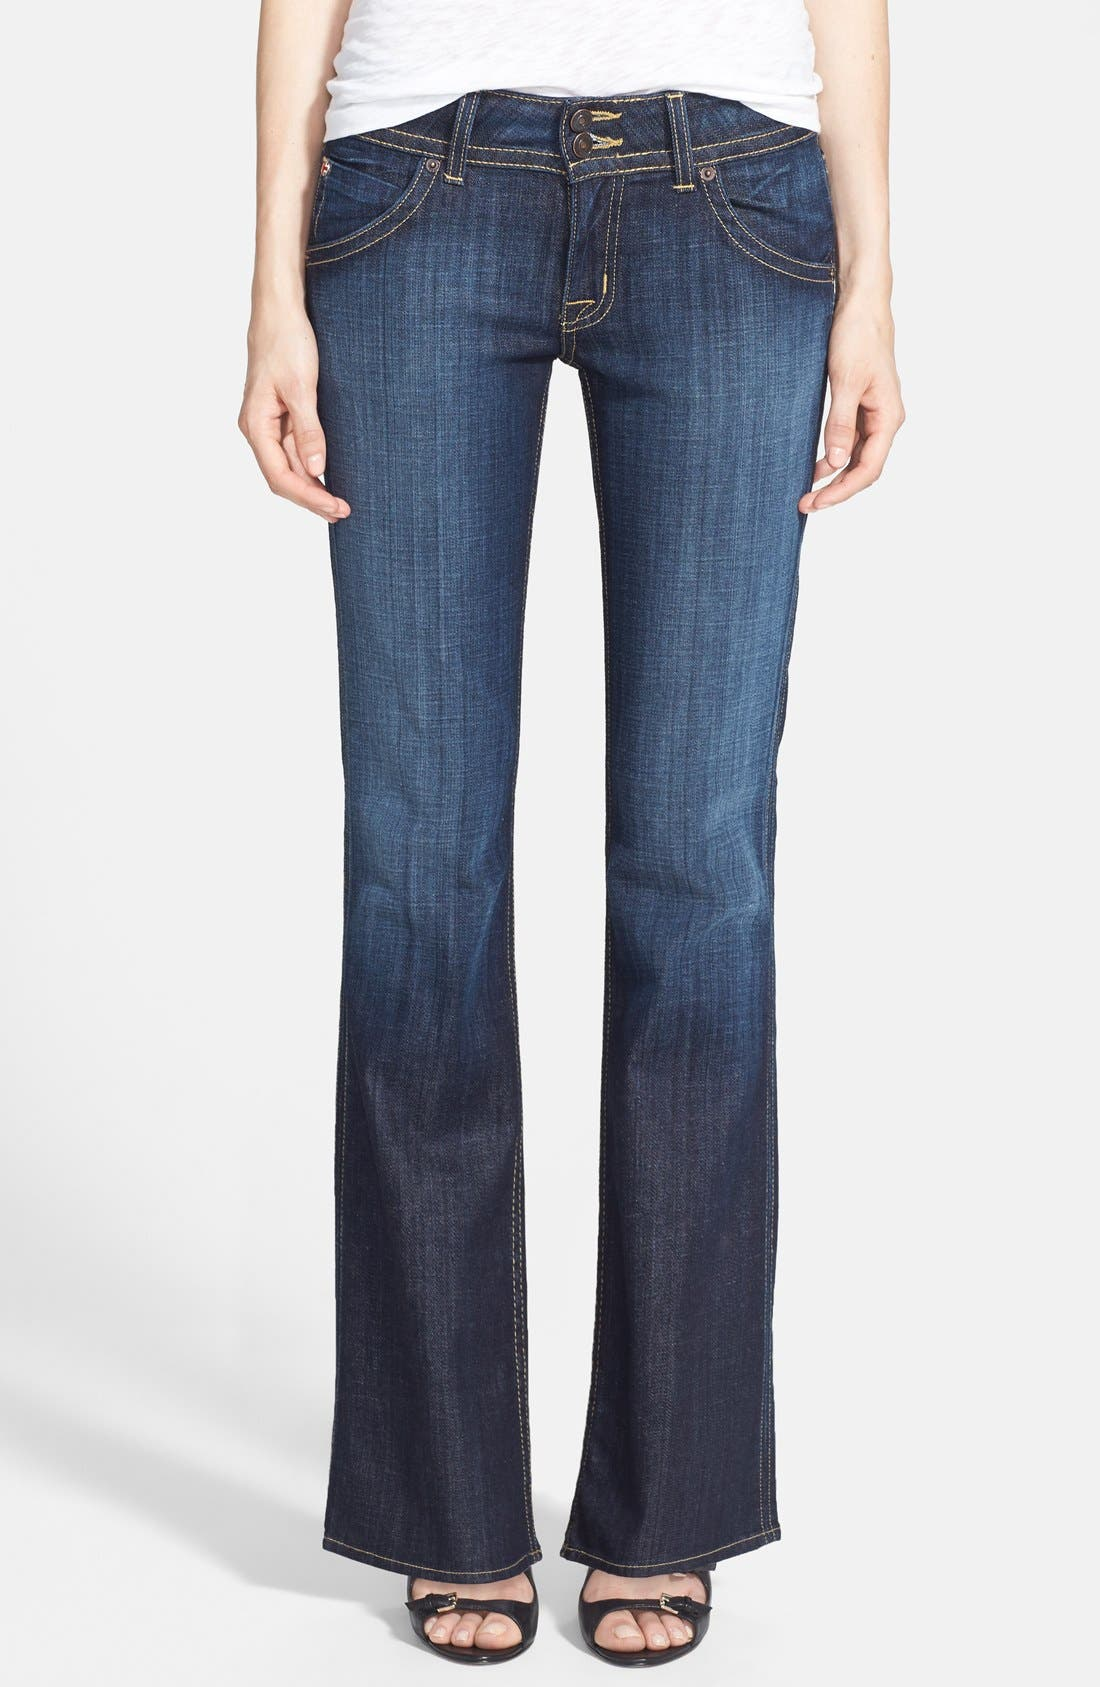 Alternate Image 1 Selected - Hudson Jeans Signature Bootcut Stretch Jeans (Elm) (Petite)